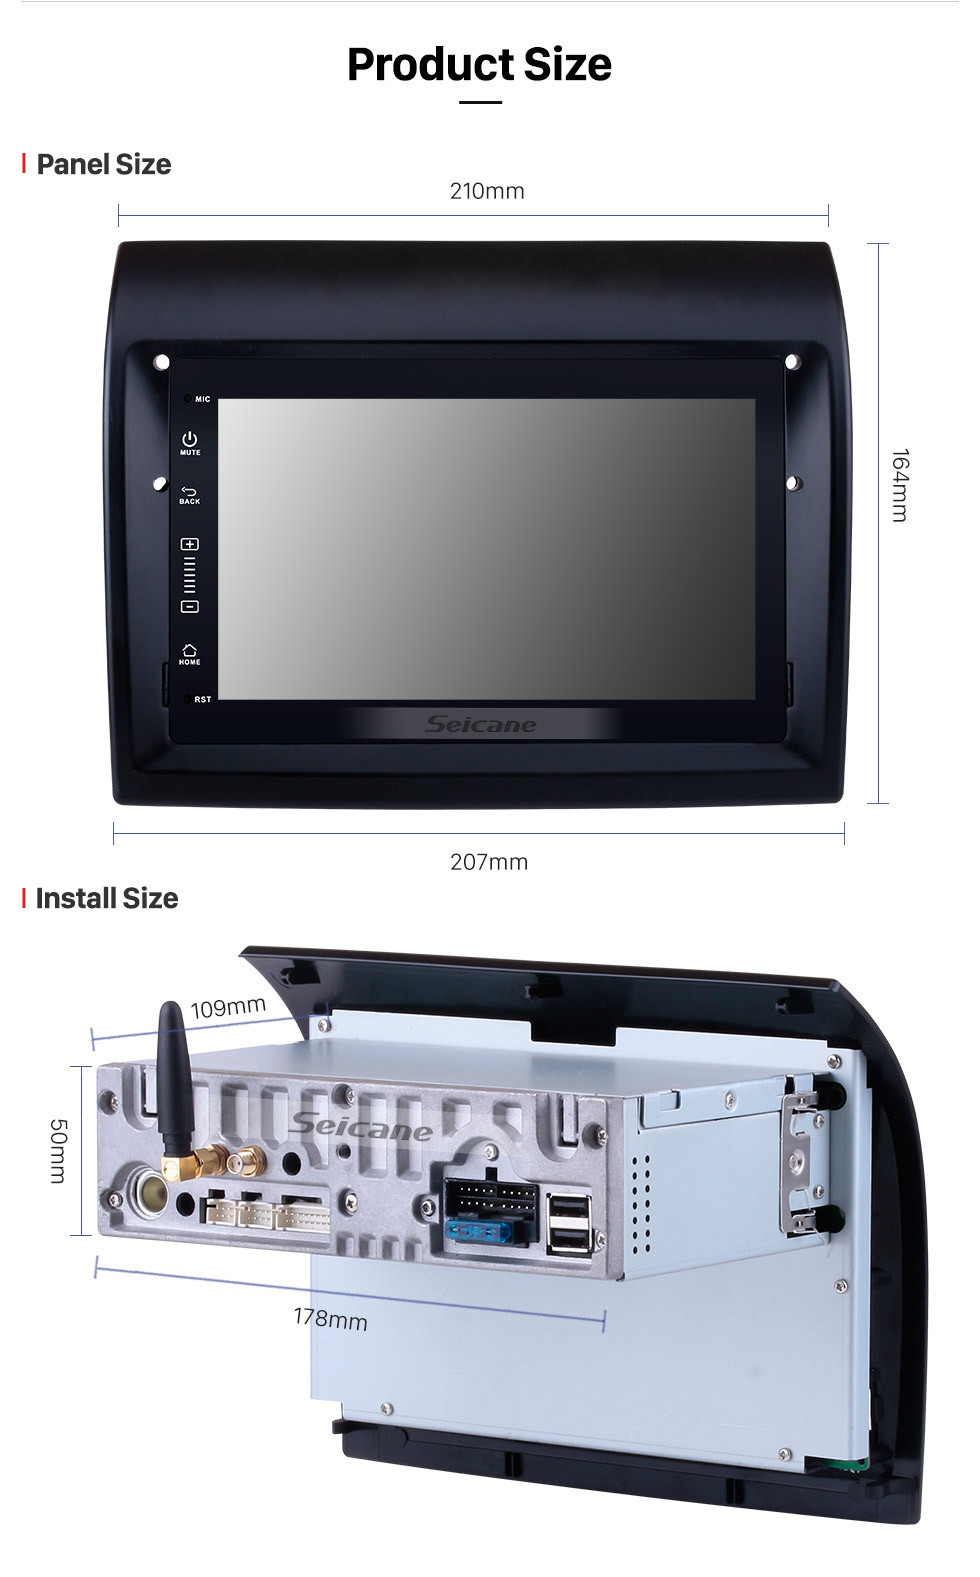 Seicane 2007-2016 Fiat Ducato/Peugeot Boxer Aftermarket 7 inch Android 10.0 Radio DVD Multimedia Player GPS Navigation System Upgrate Headunit with Bluetooth Music 3G Wifi Mirror Link Steering Wheel Control Backup Camera DVR OBD2 DAB+